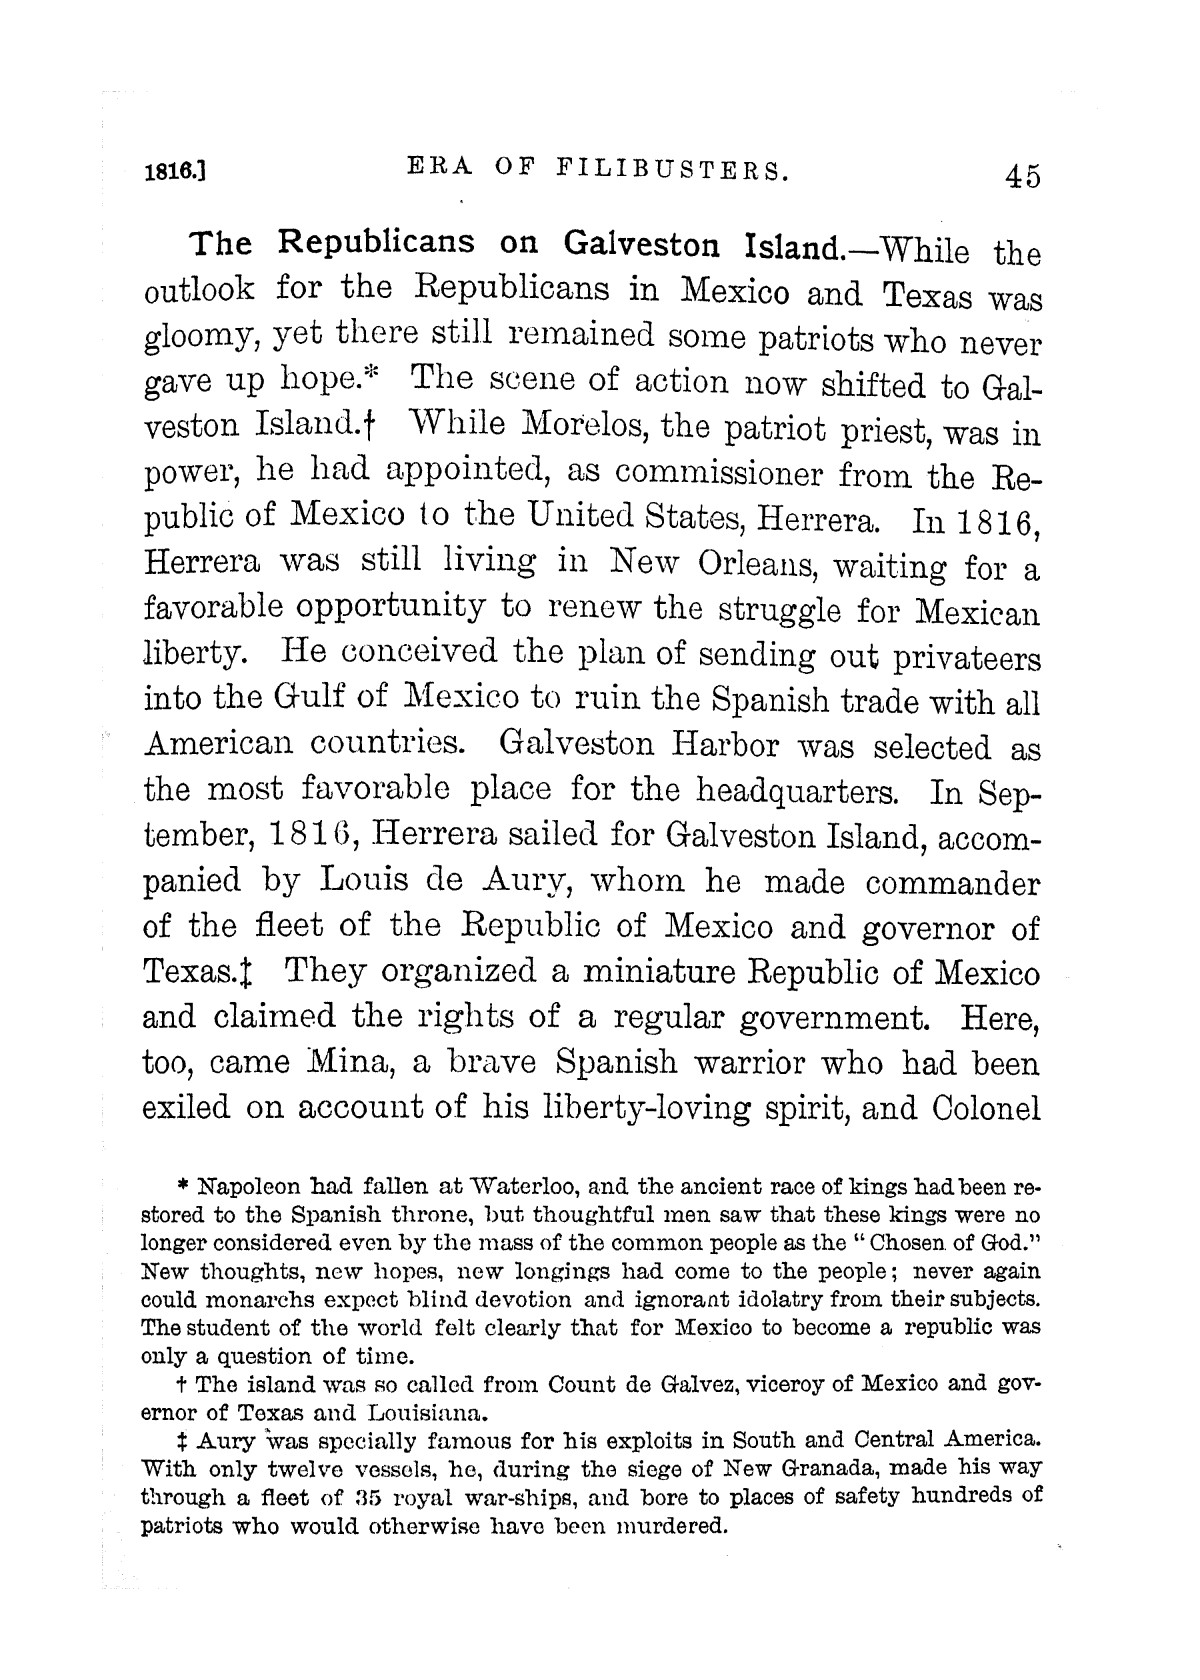 A new history of Texas for schools : also for general reading and for teachers preparing themselves for examination                                                                                                      [Sequence #]: 59 of 412